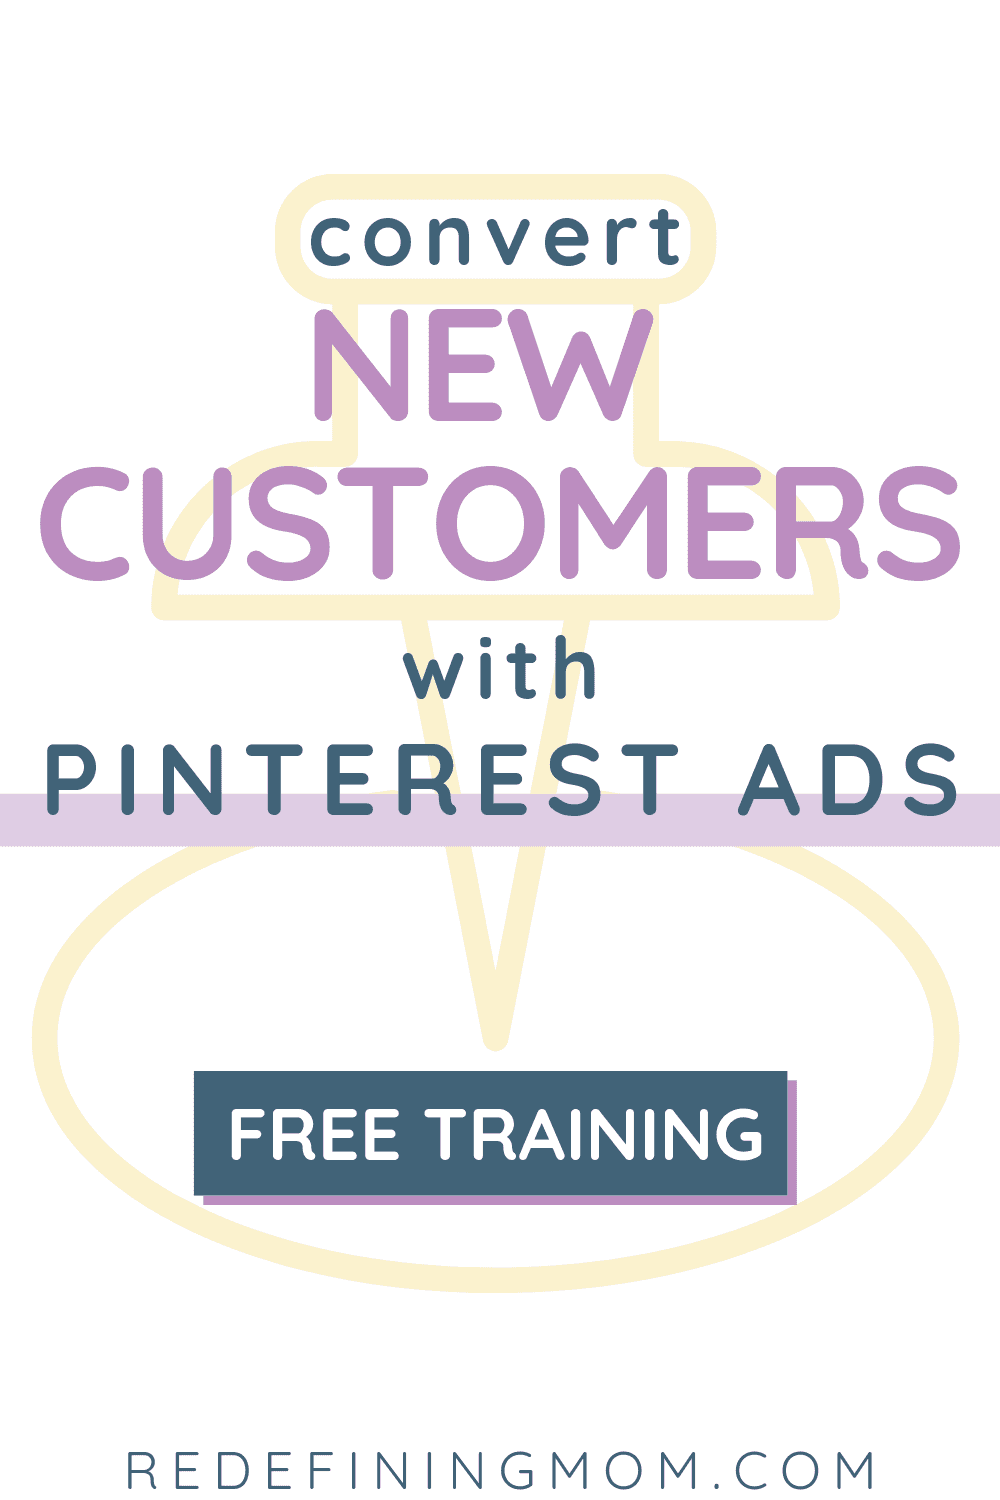 3-day Pinterest challenge for bloggers on Pinterest Ads (promoted pins). Pin Practical Ads will teach you how to convert new customers by setting up the perfect promoted pin campaign! You don't want to miss these Pinterest marketing strategies.